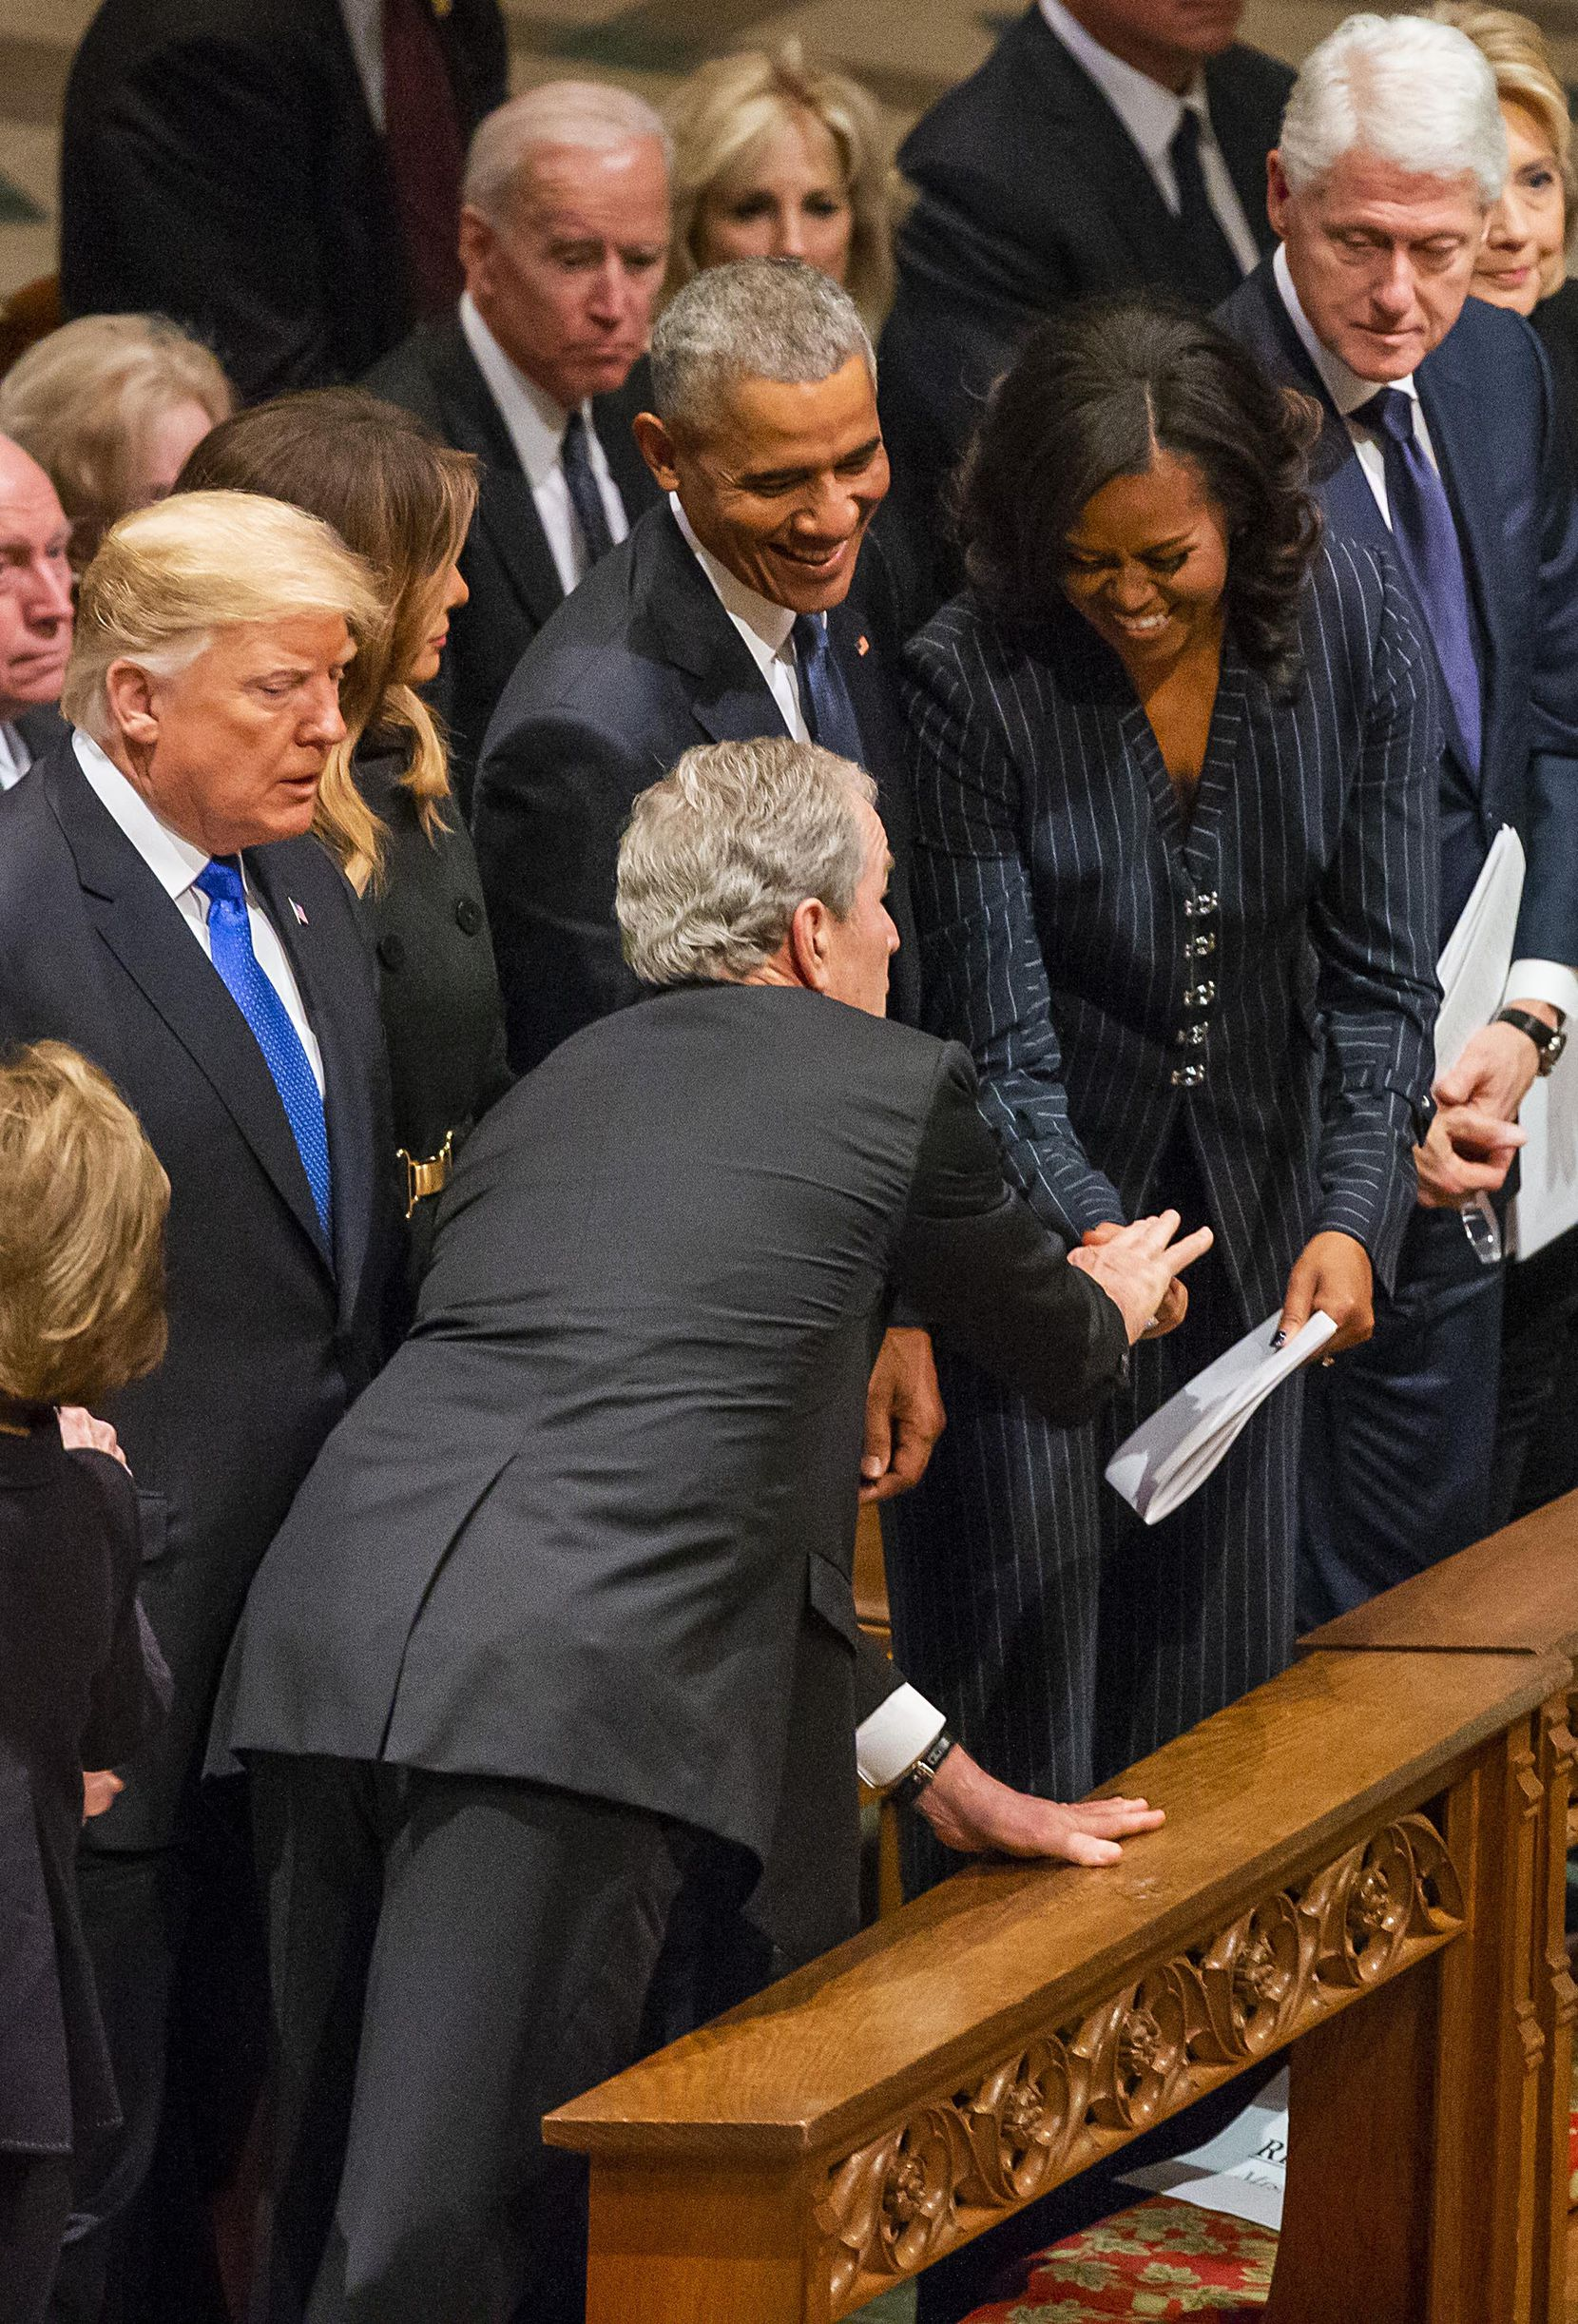 Former President George W. Bush, hands something to a laughing Michelle Obama as (from left) President Donald Trump, first lady Melania Trump, former President Barack Obama, former President Bill Clinton and former Secretary of State Hillary Clinton, look on before Bush took his seat for the State Funeral for George H.W. Bush, the 41st President of the United States, at the Washington National Cathedral on Wednesday, Dec. 5, 2018, in Washington.